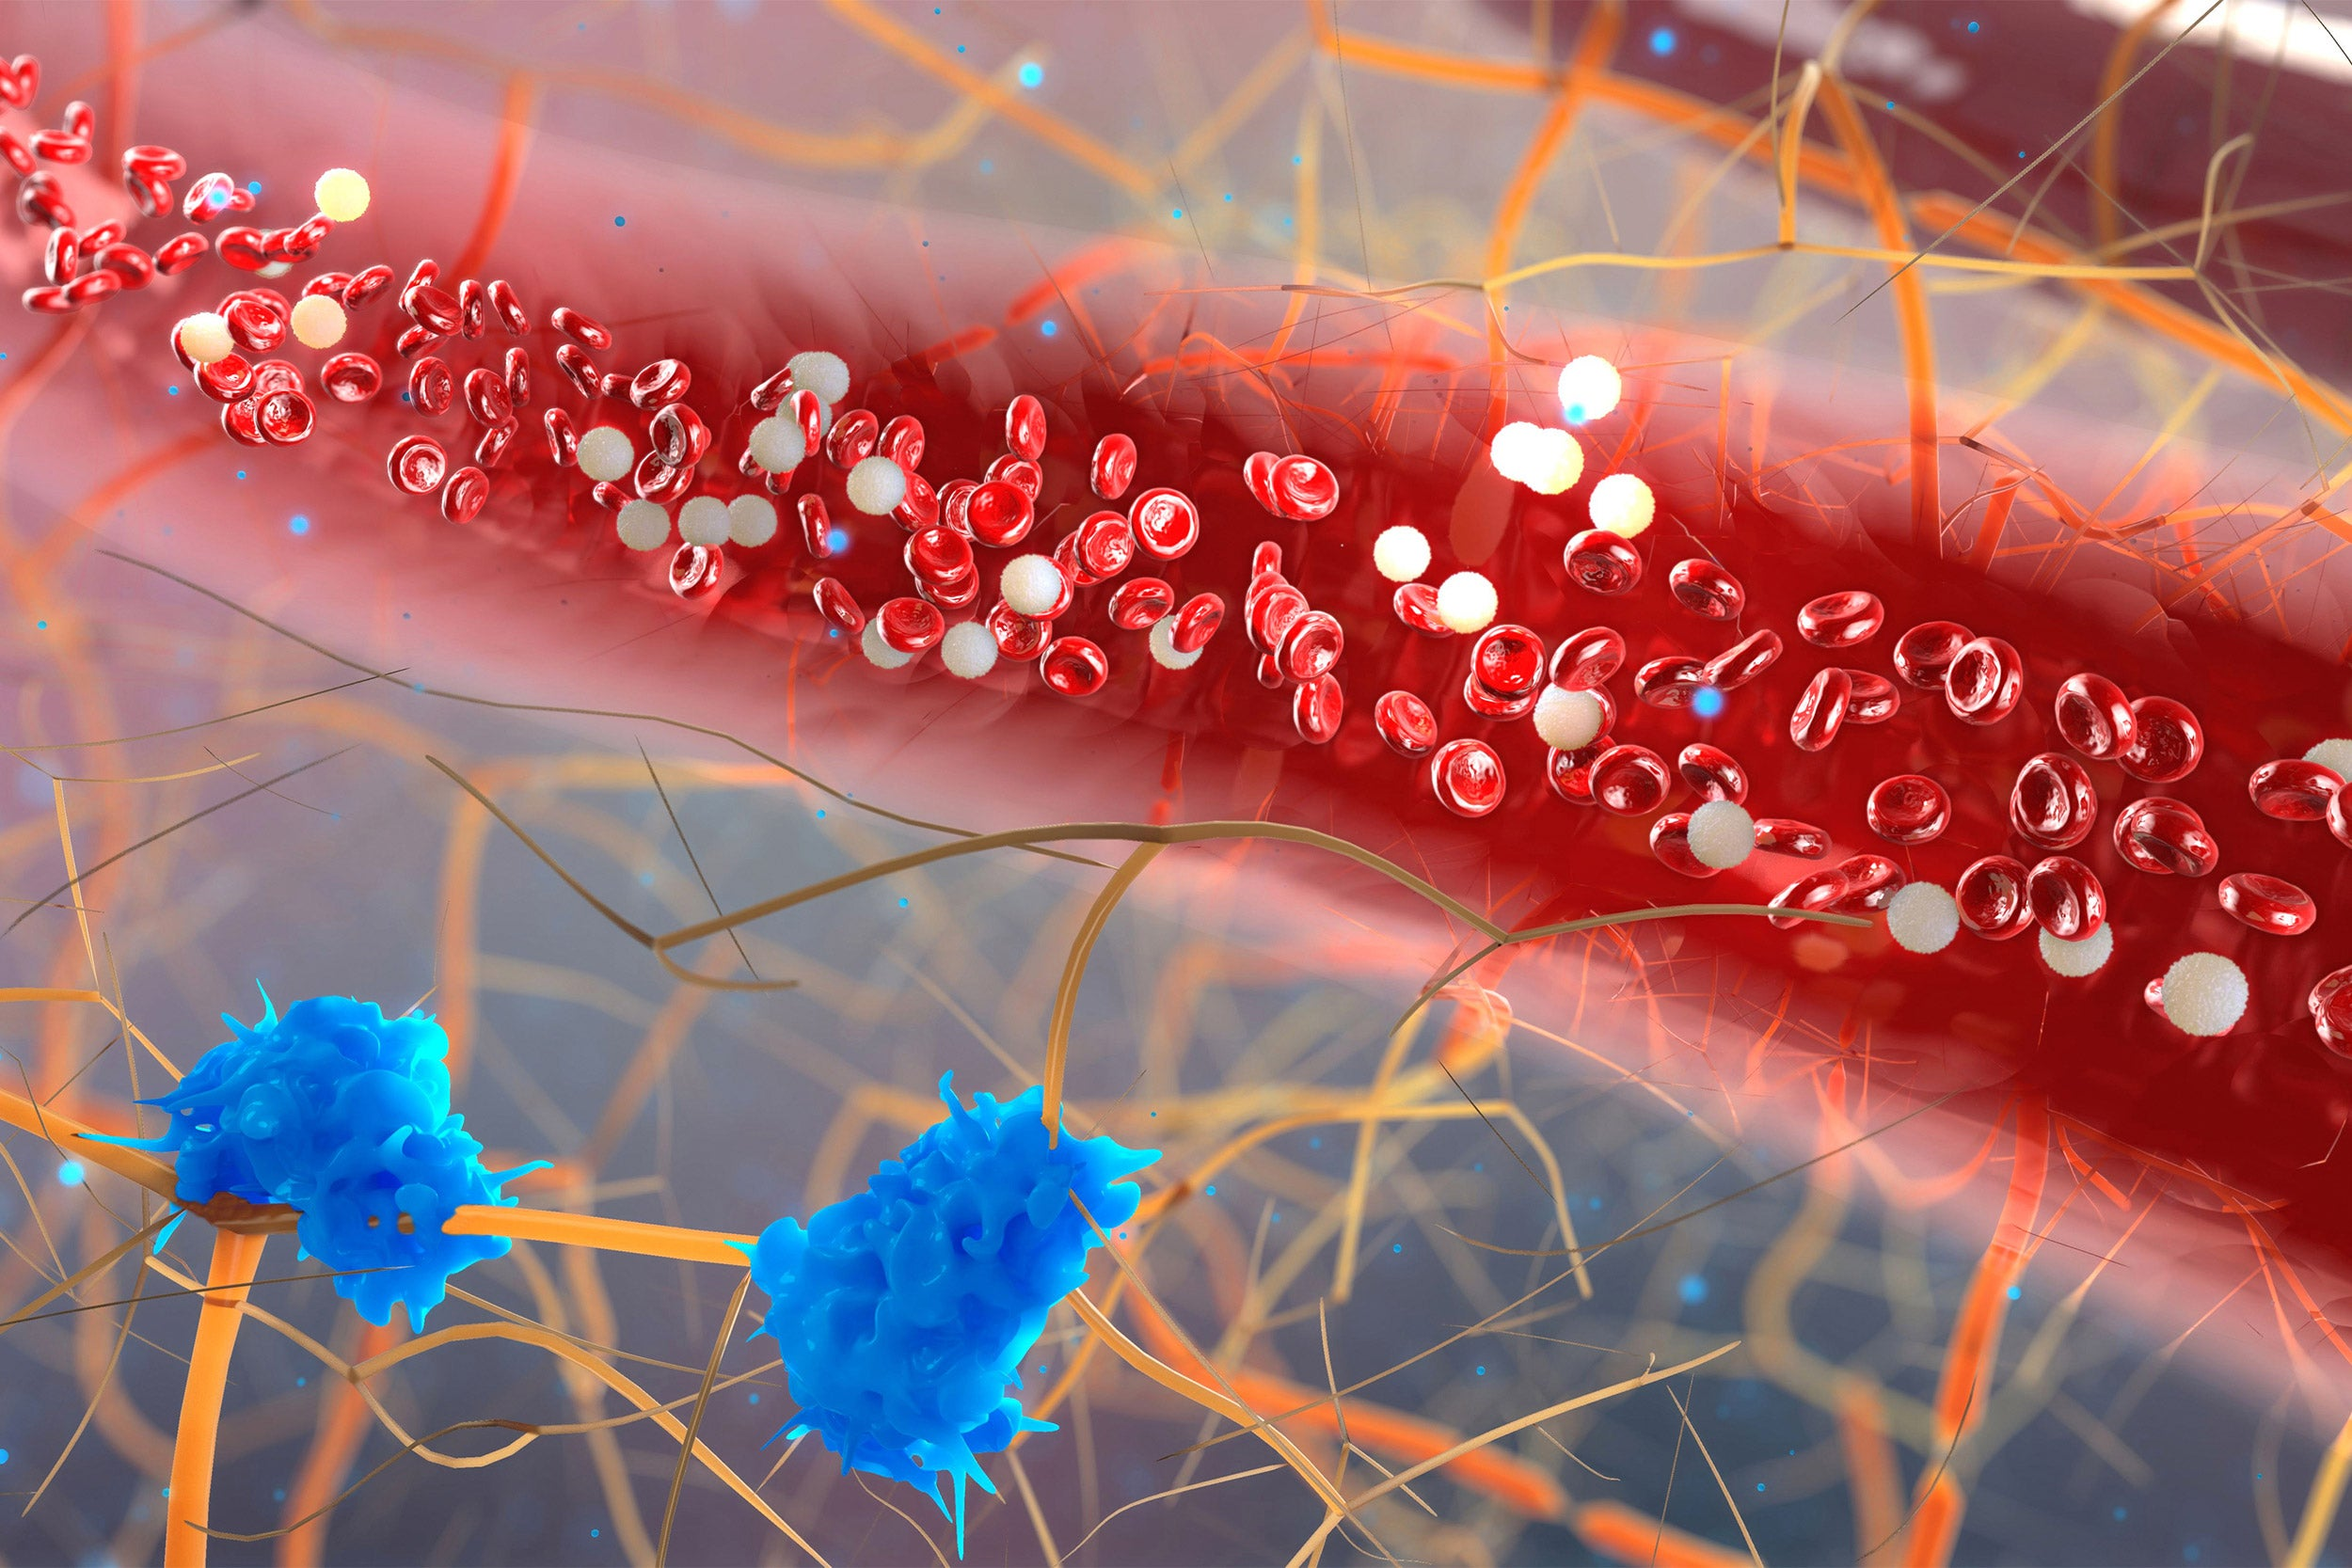 Blood vessel with white blood cells